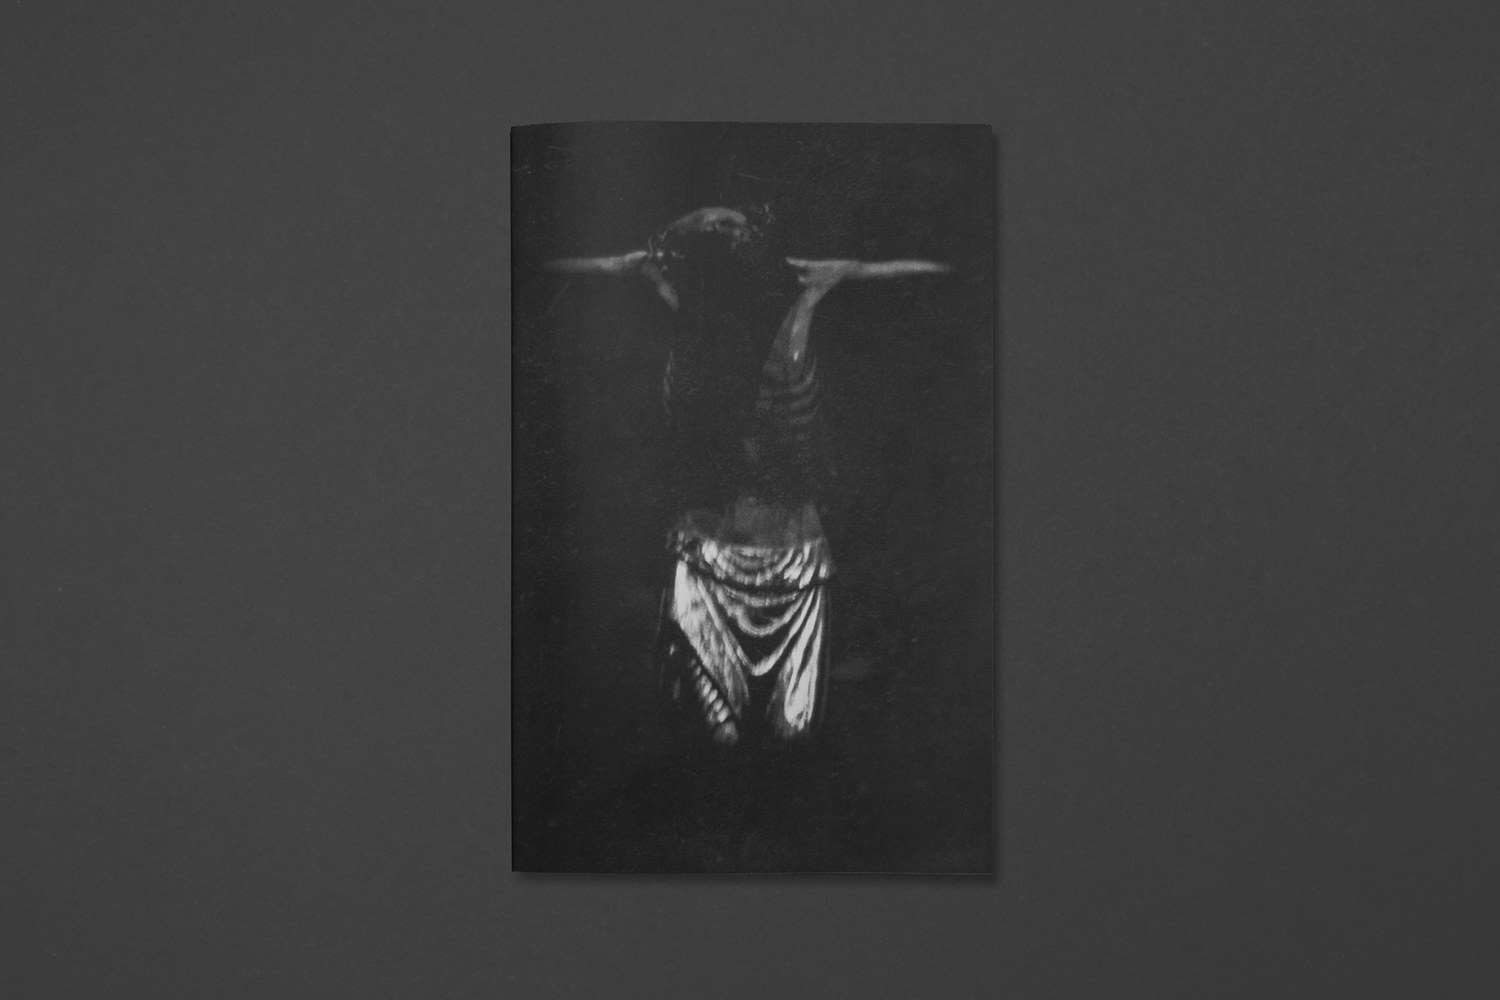 Pusha T's 'King Push - Darkest Before Dawn: The Prelude' Set to Be Released in Deluxe Zine Form